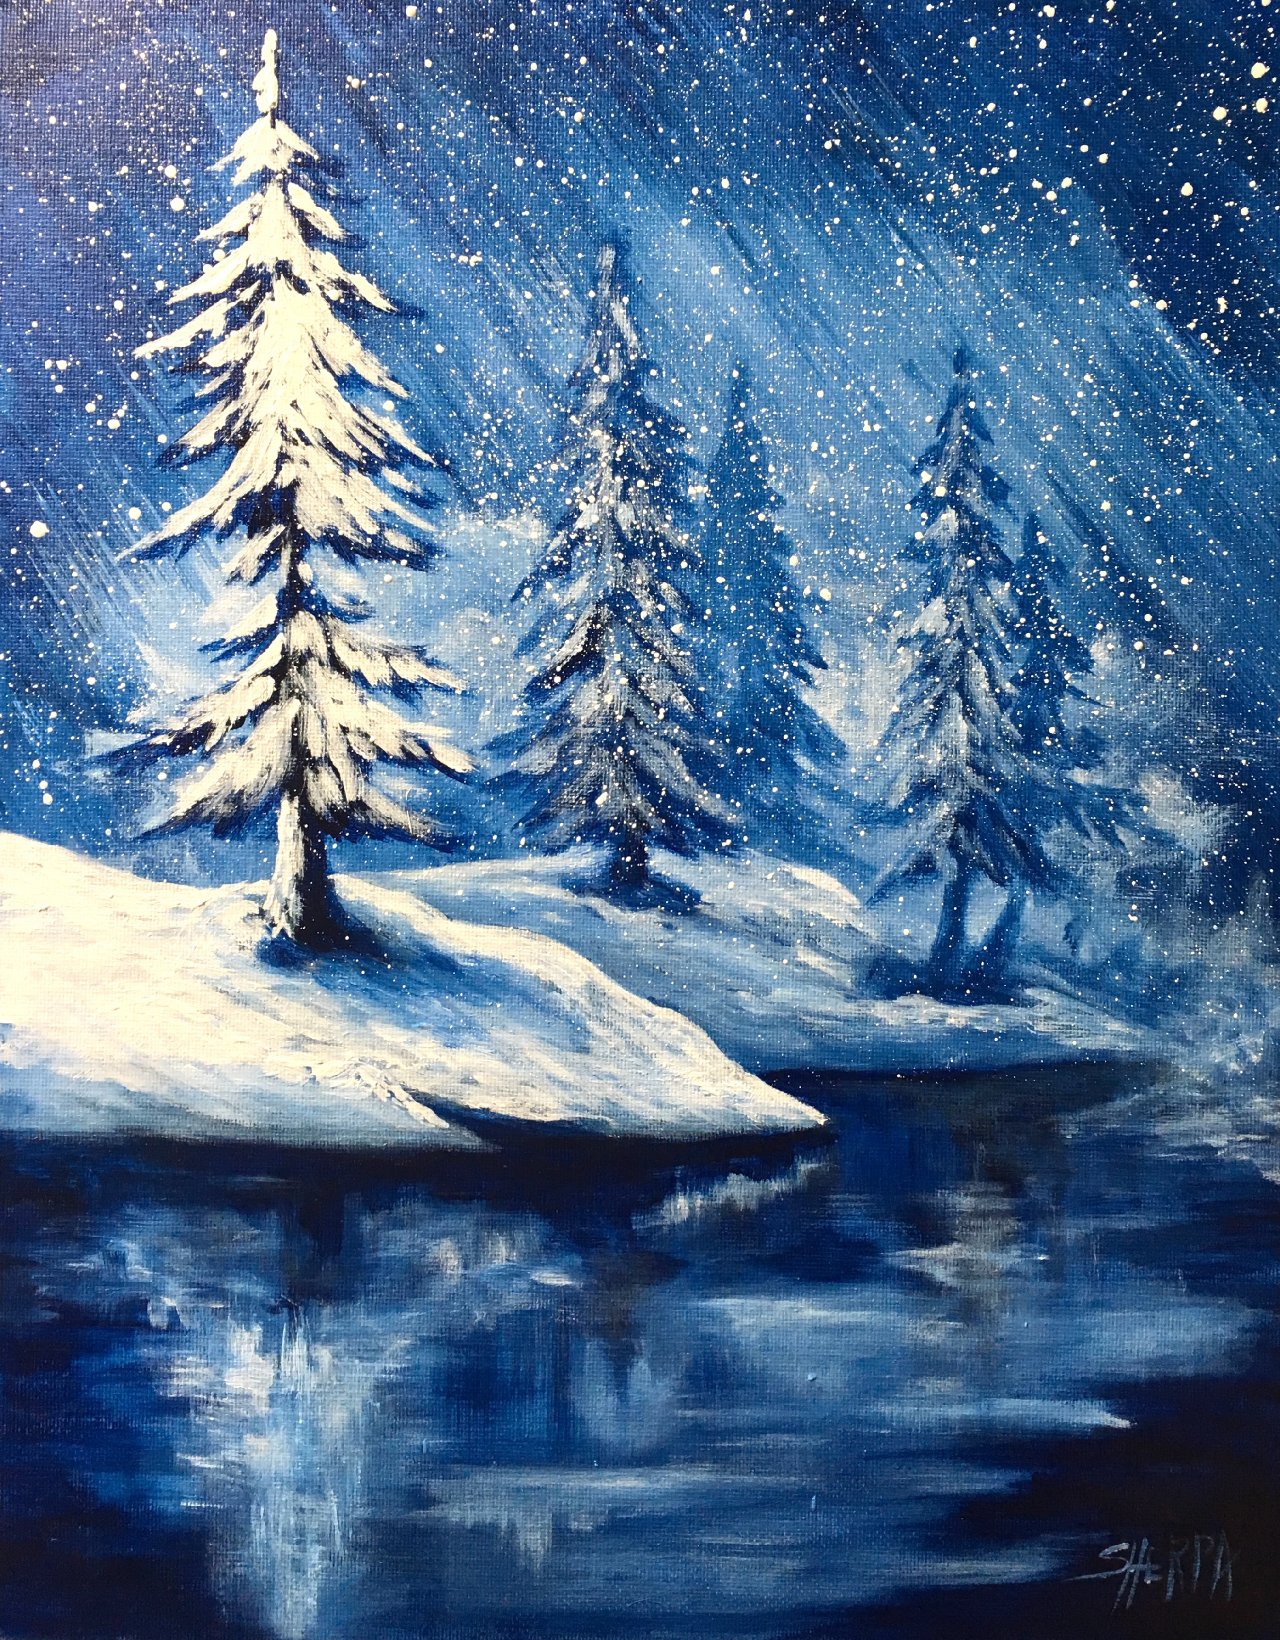 Simple Winter Landscape Frozen Lake With Pines The Art